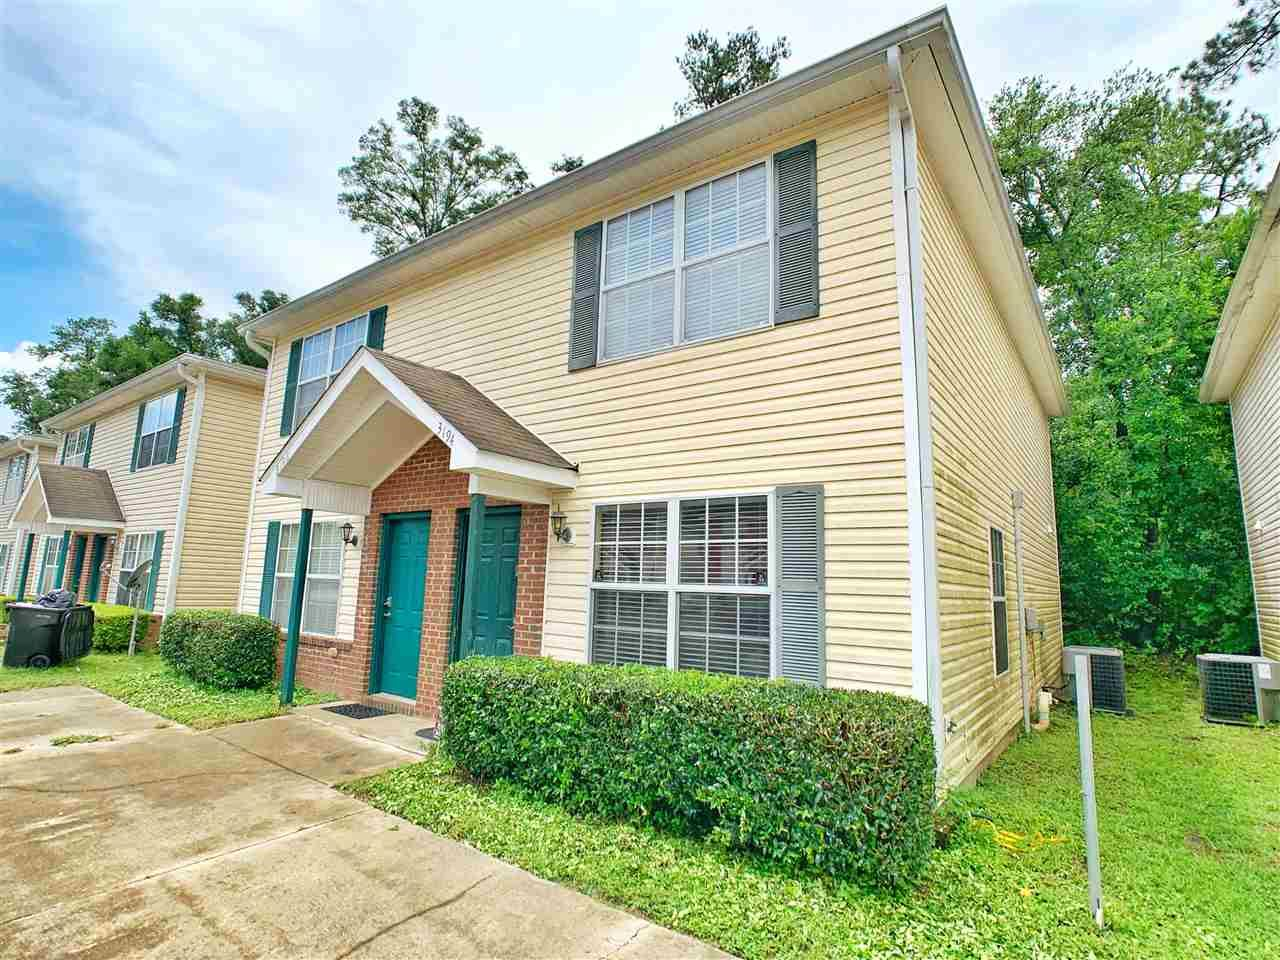 Photo of 3194 Allison Marie Court, TALLAHASSEE, FL 32304 (MLS # 320399)